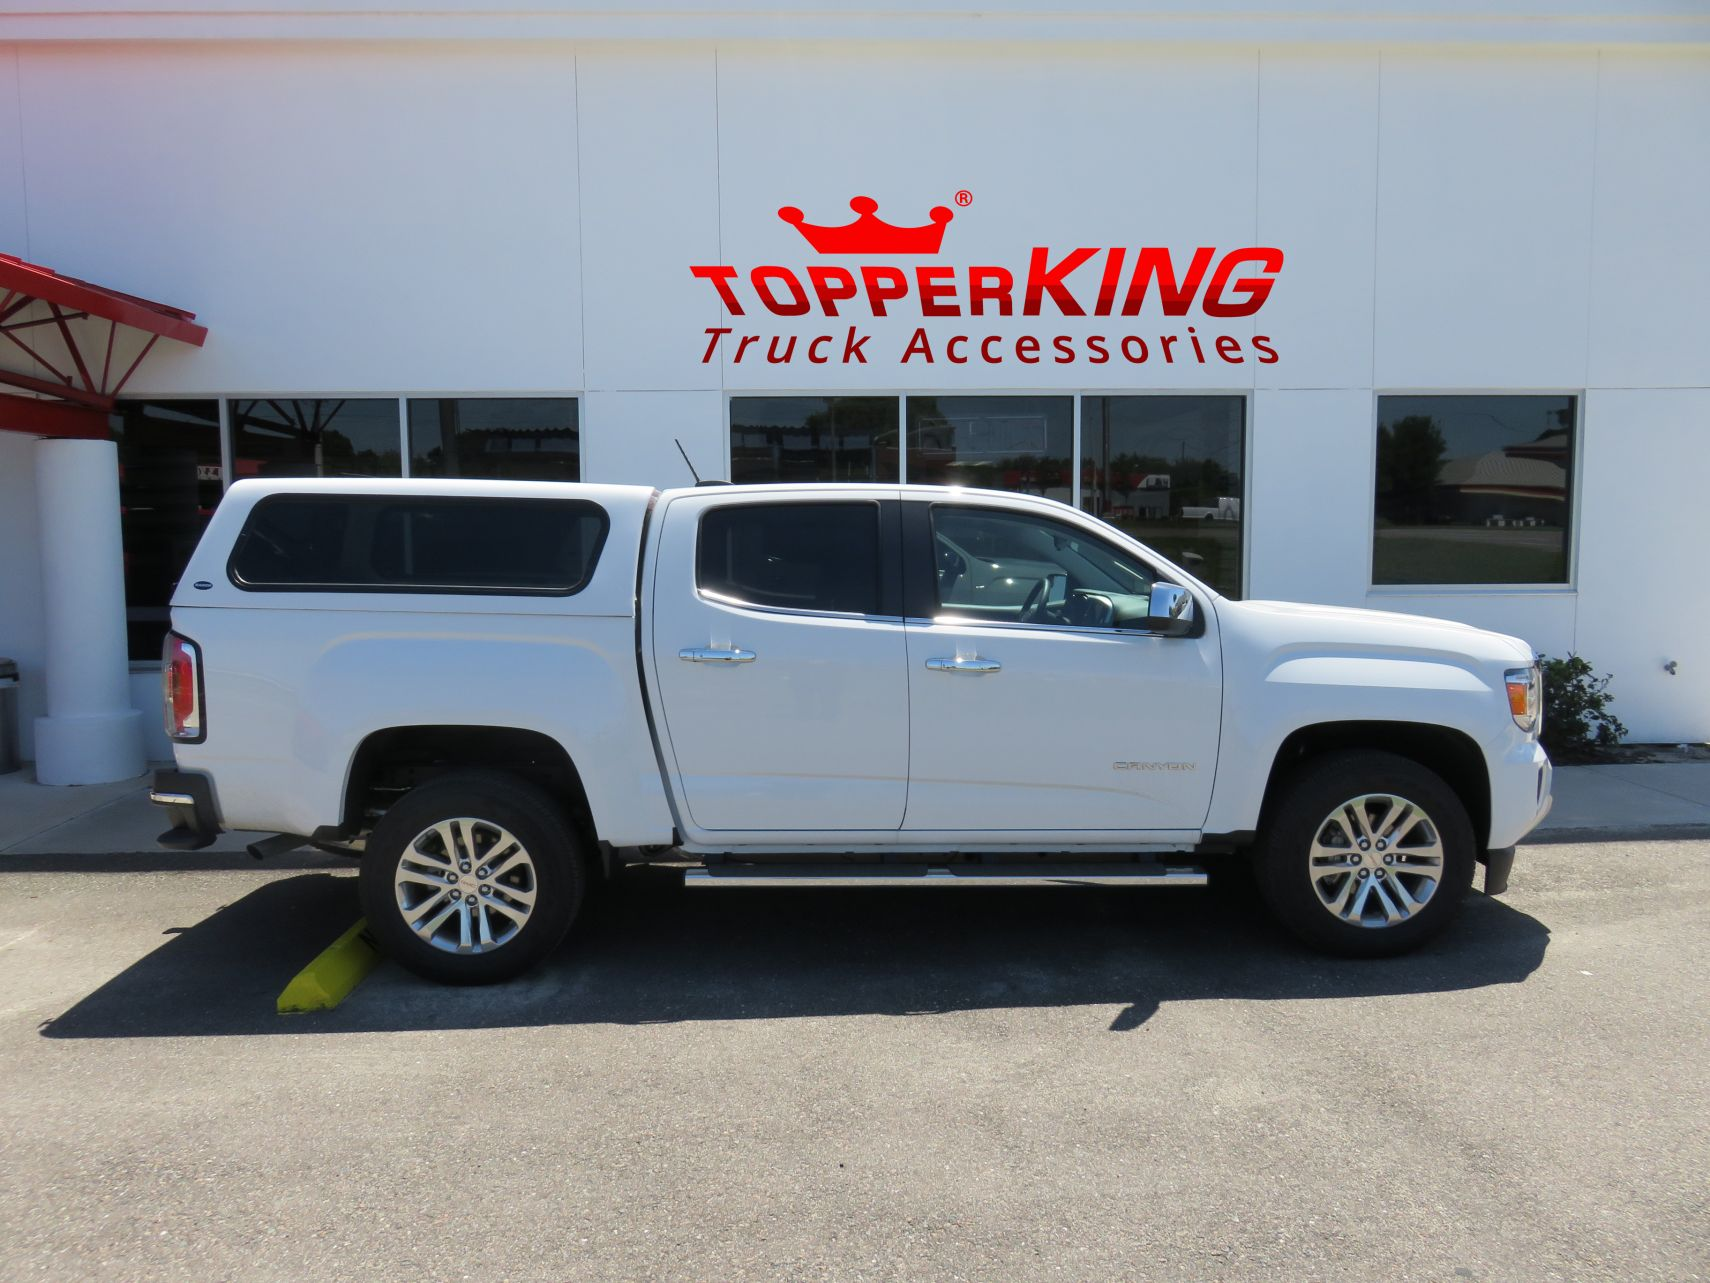 GMC CanyonRanch Echofiberglass topper from TopperKING by TopperKING in Brandon, FL 813-689-2449 Call today to start on your truck!